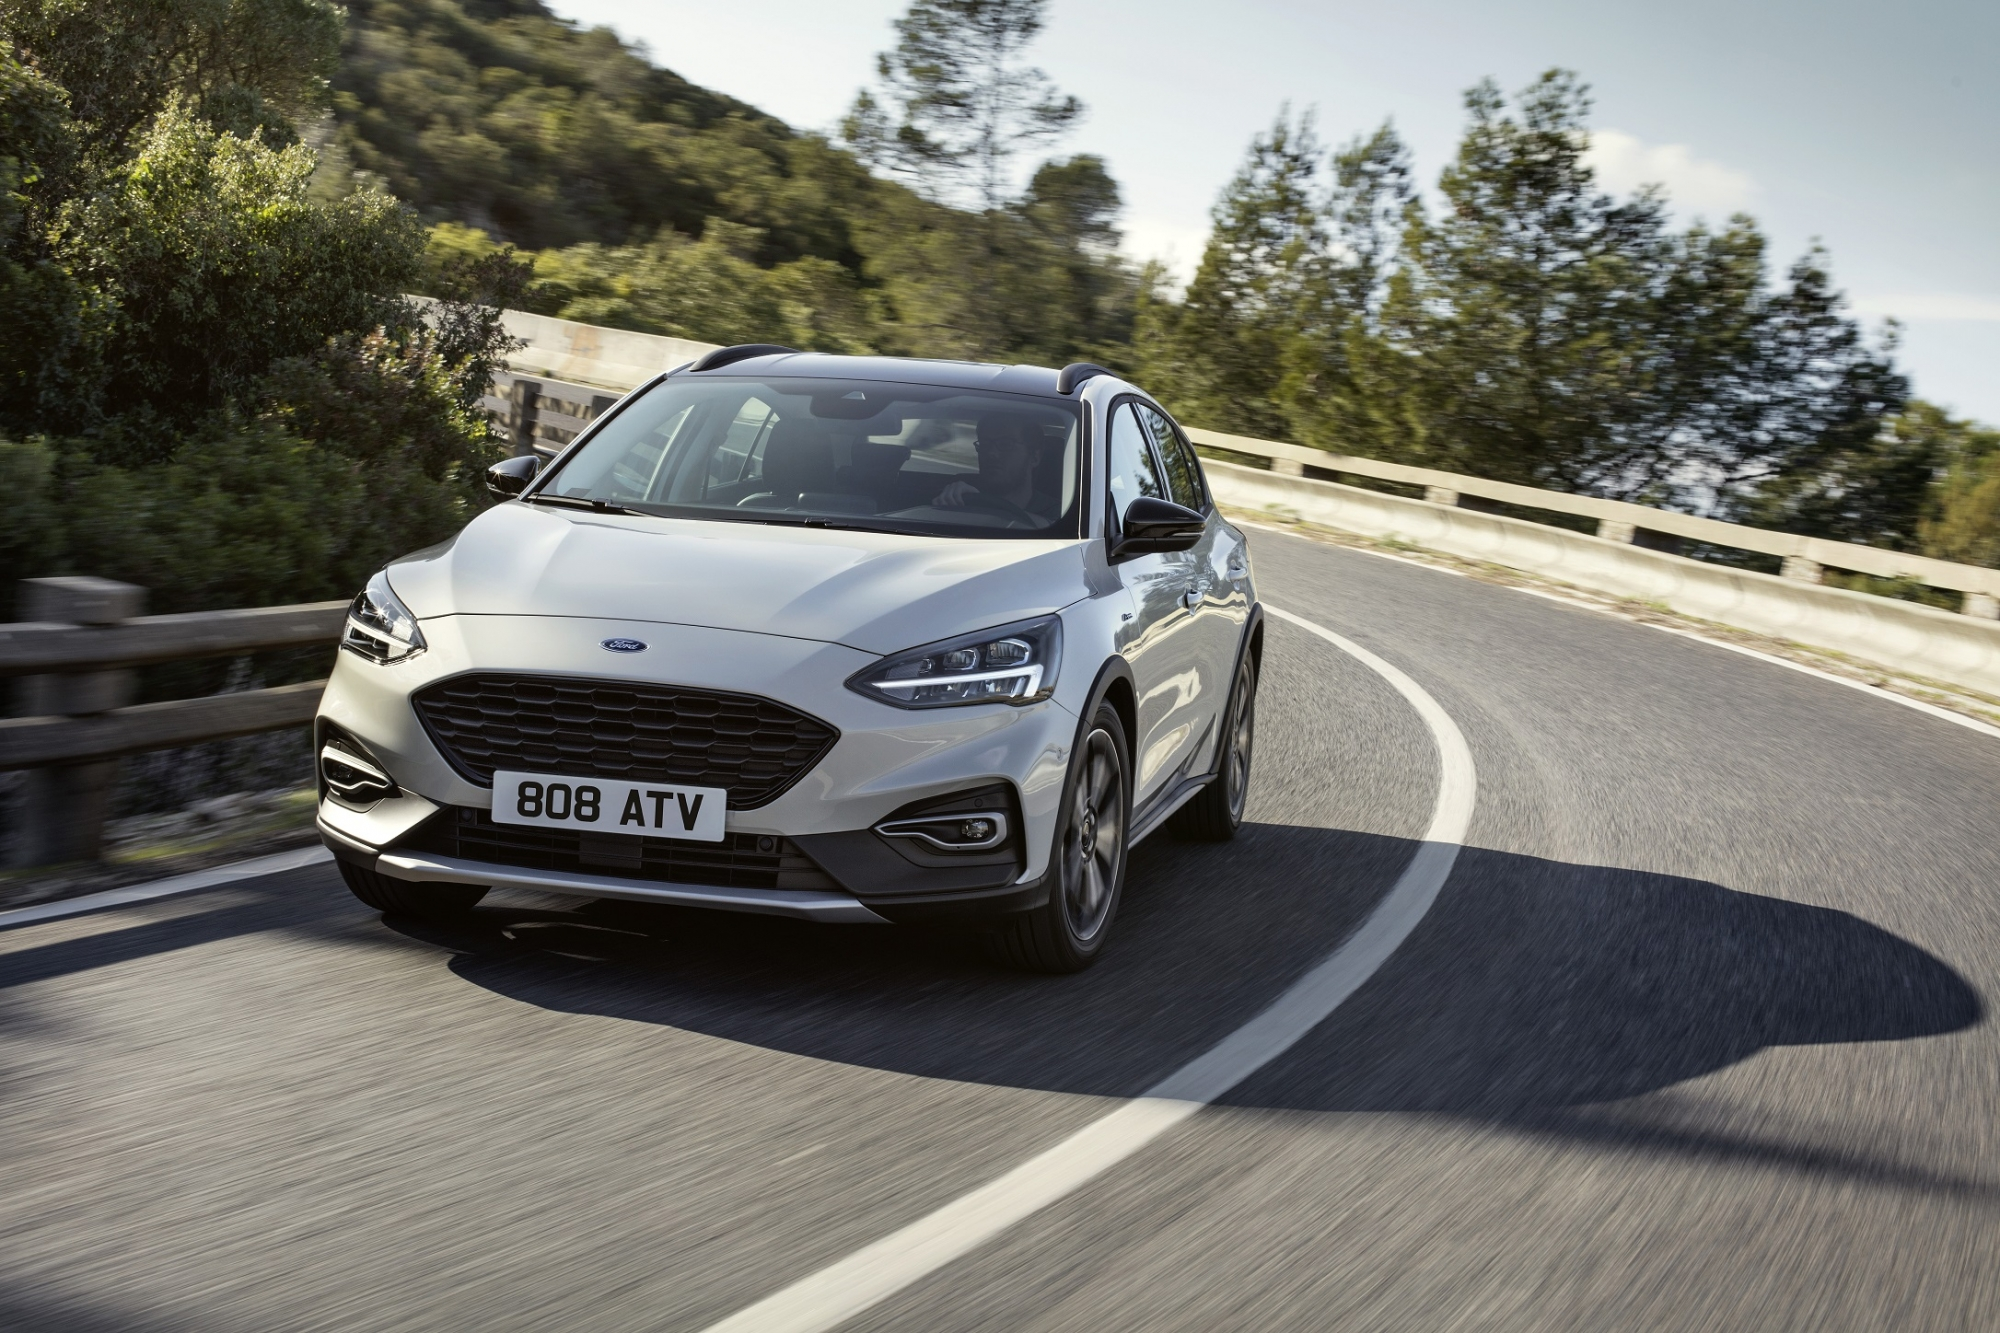 1533283173_FORD_2018_FOCUS_ACTIVE-e1533306809927.jpg?fit=2000%2C1333